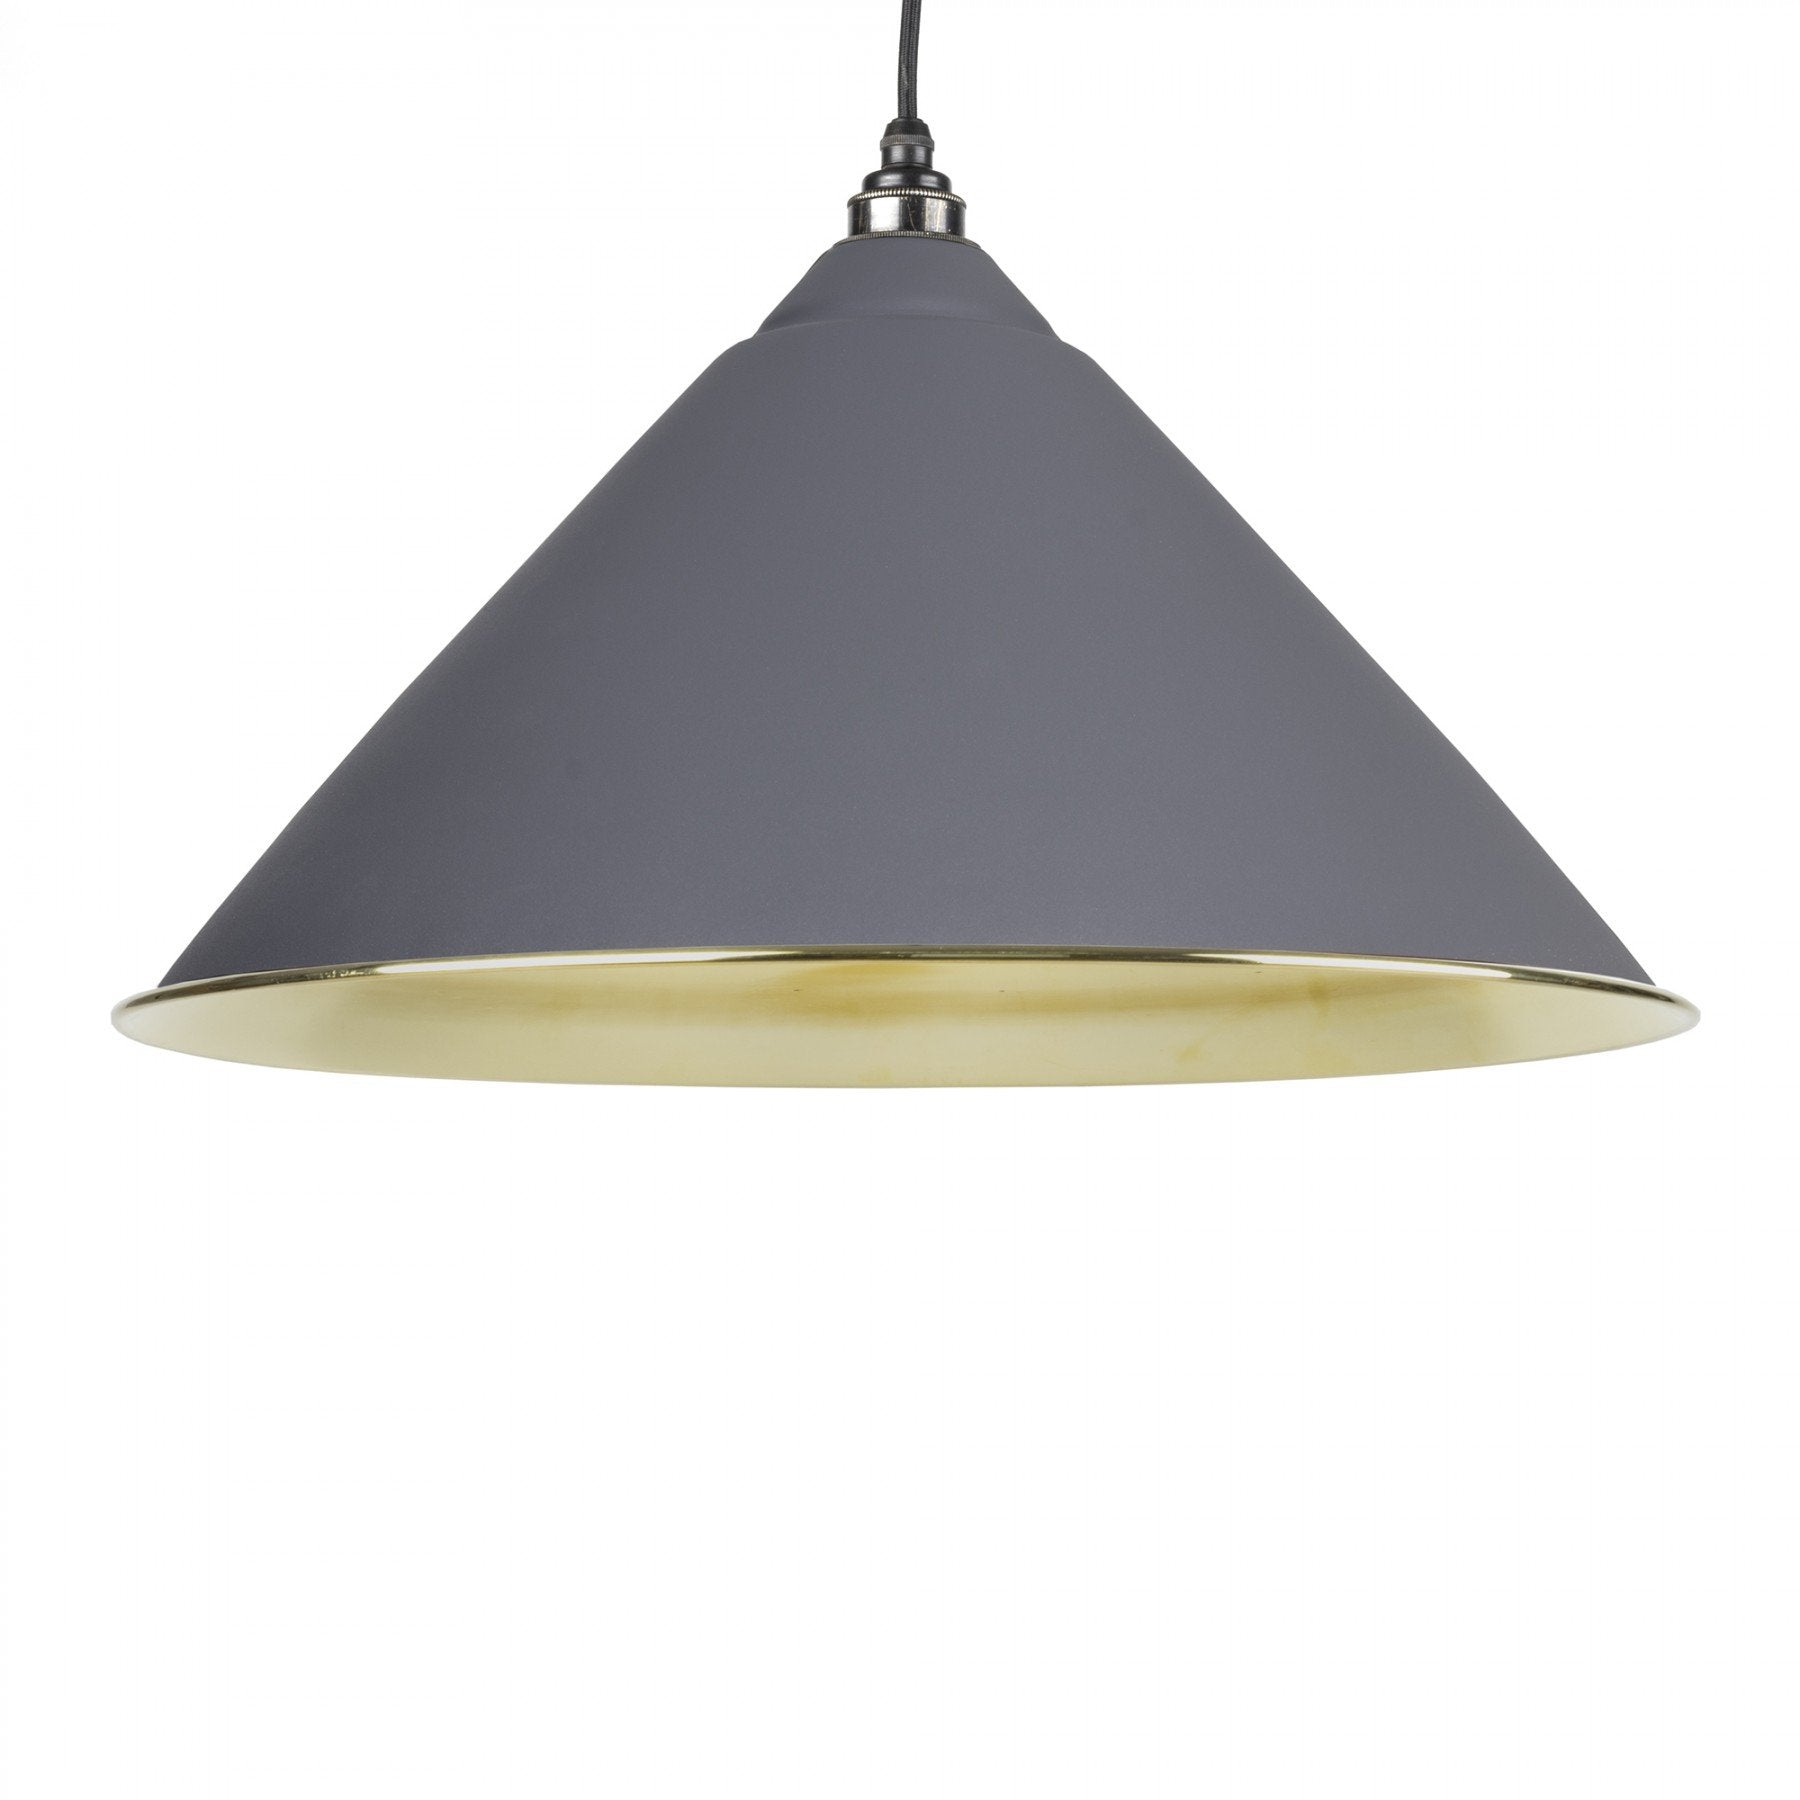 From The Anvil Dark Grey & Smooth Brass Interior Hockley Pendant - No.42 Interiors